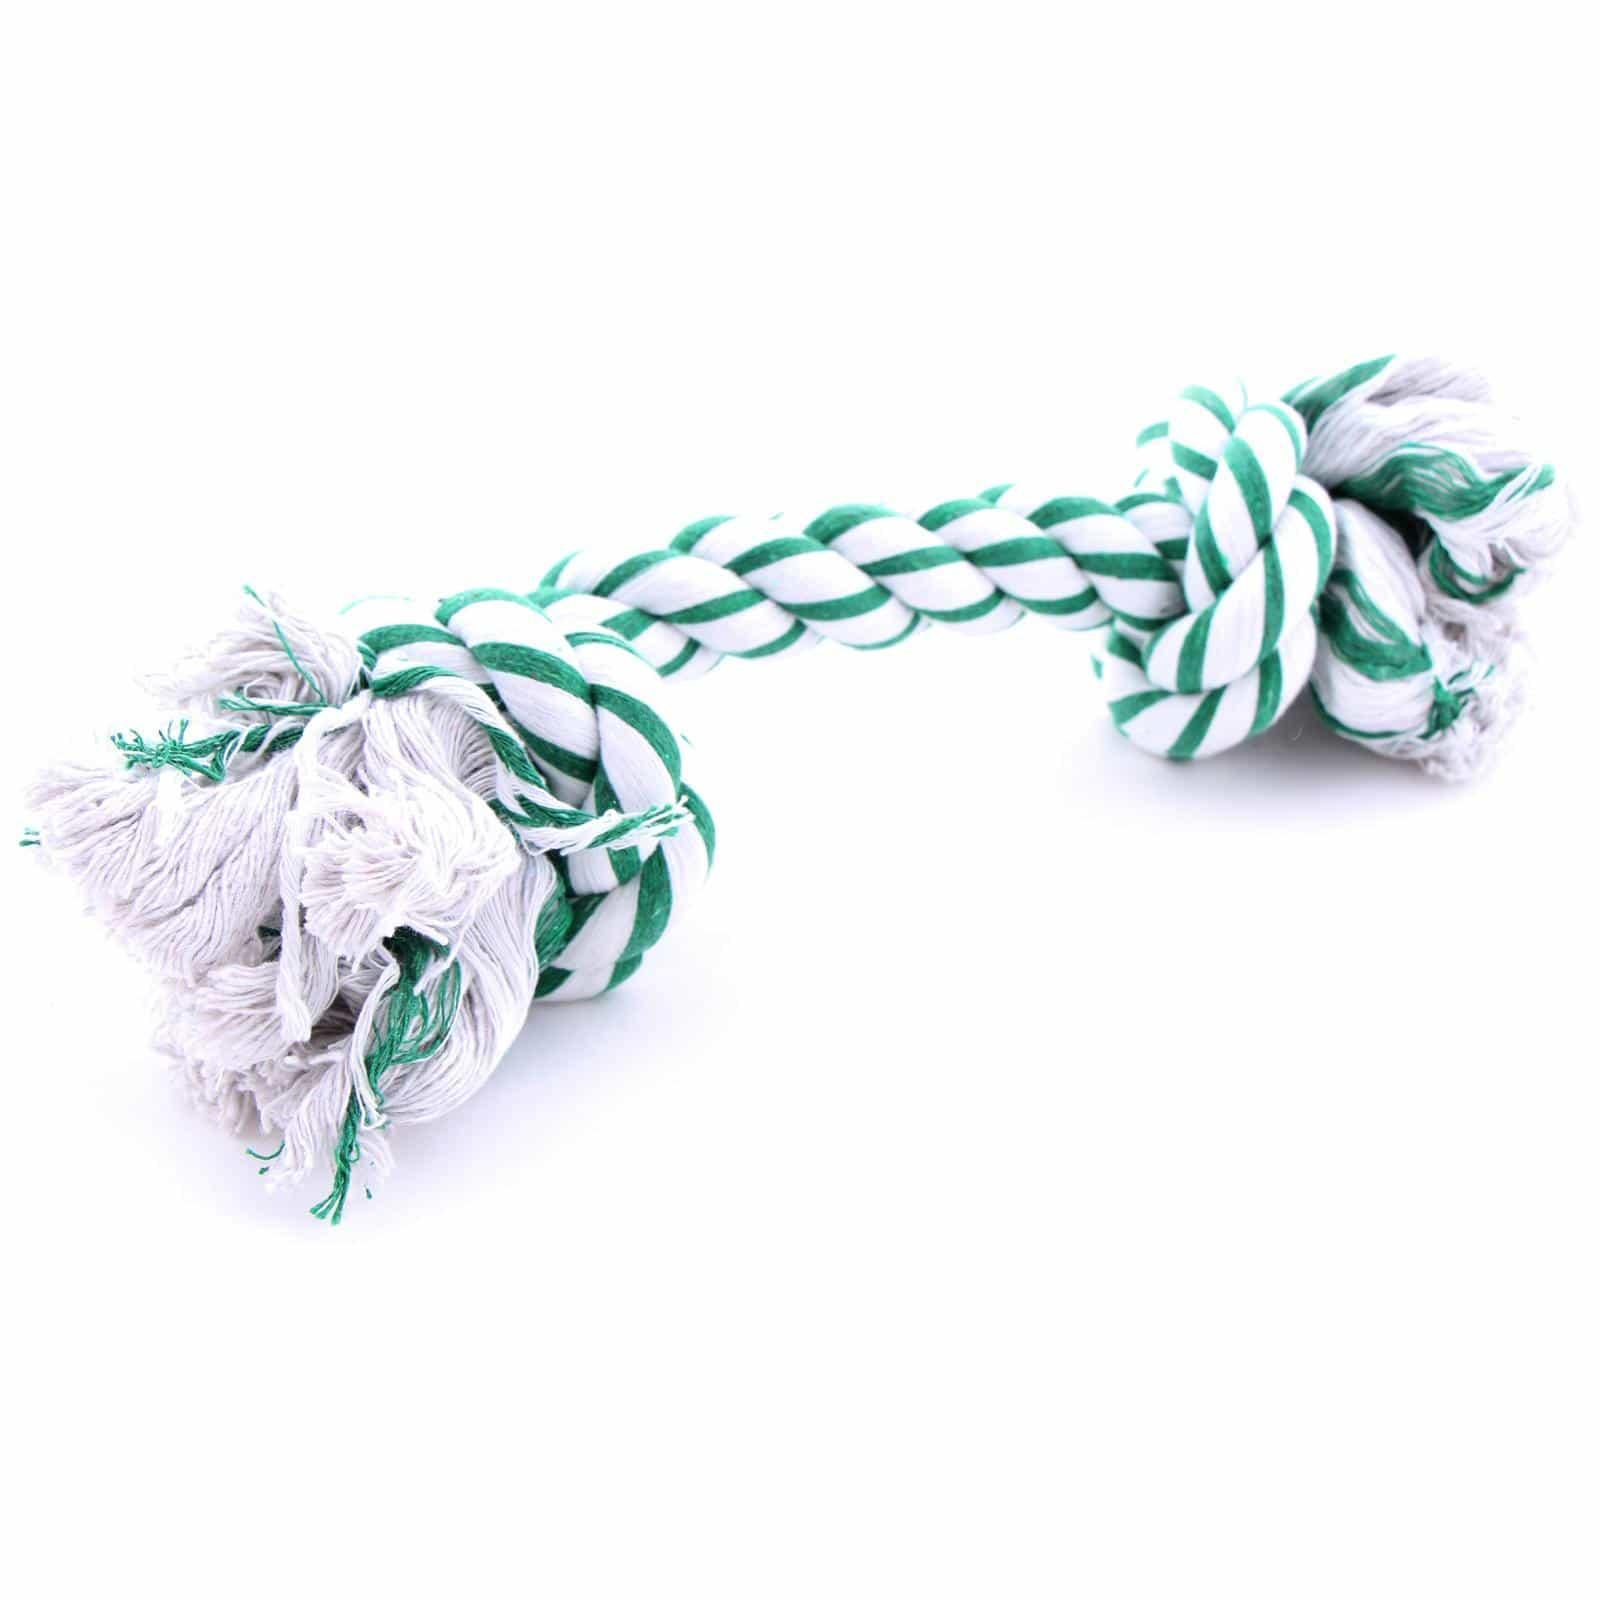 FRESHEEZE Yours Droolly Fresheeze Mint Rope Small